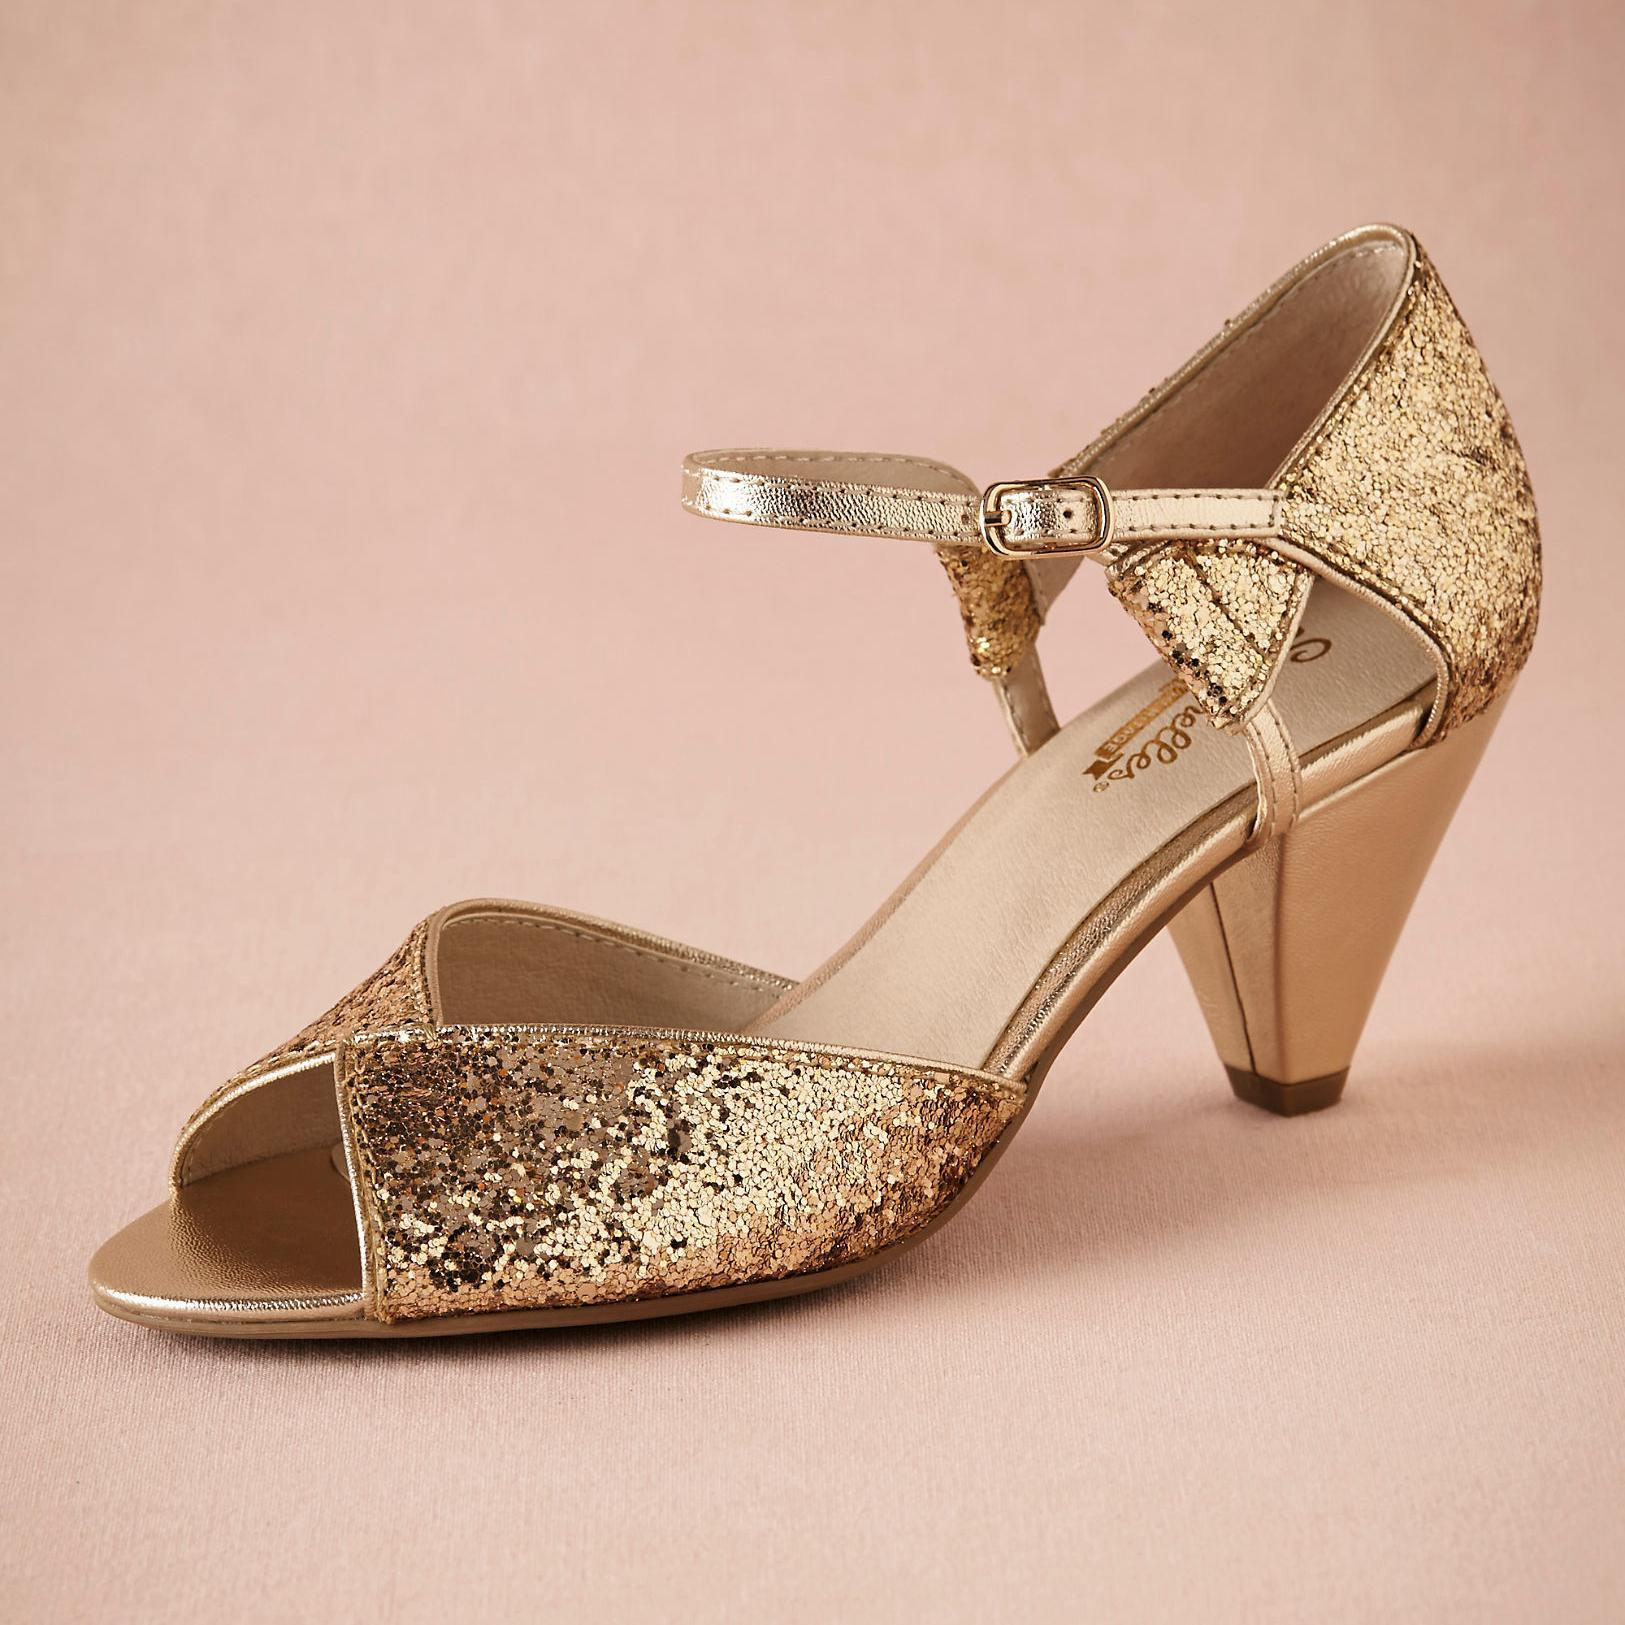 Gold Glitter Spark Wedding Shoe Handmade Pumps Leather Sole ...